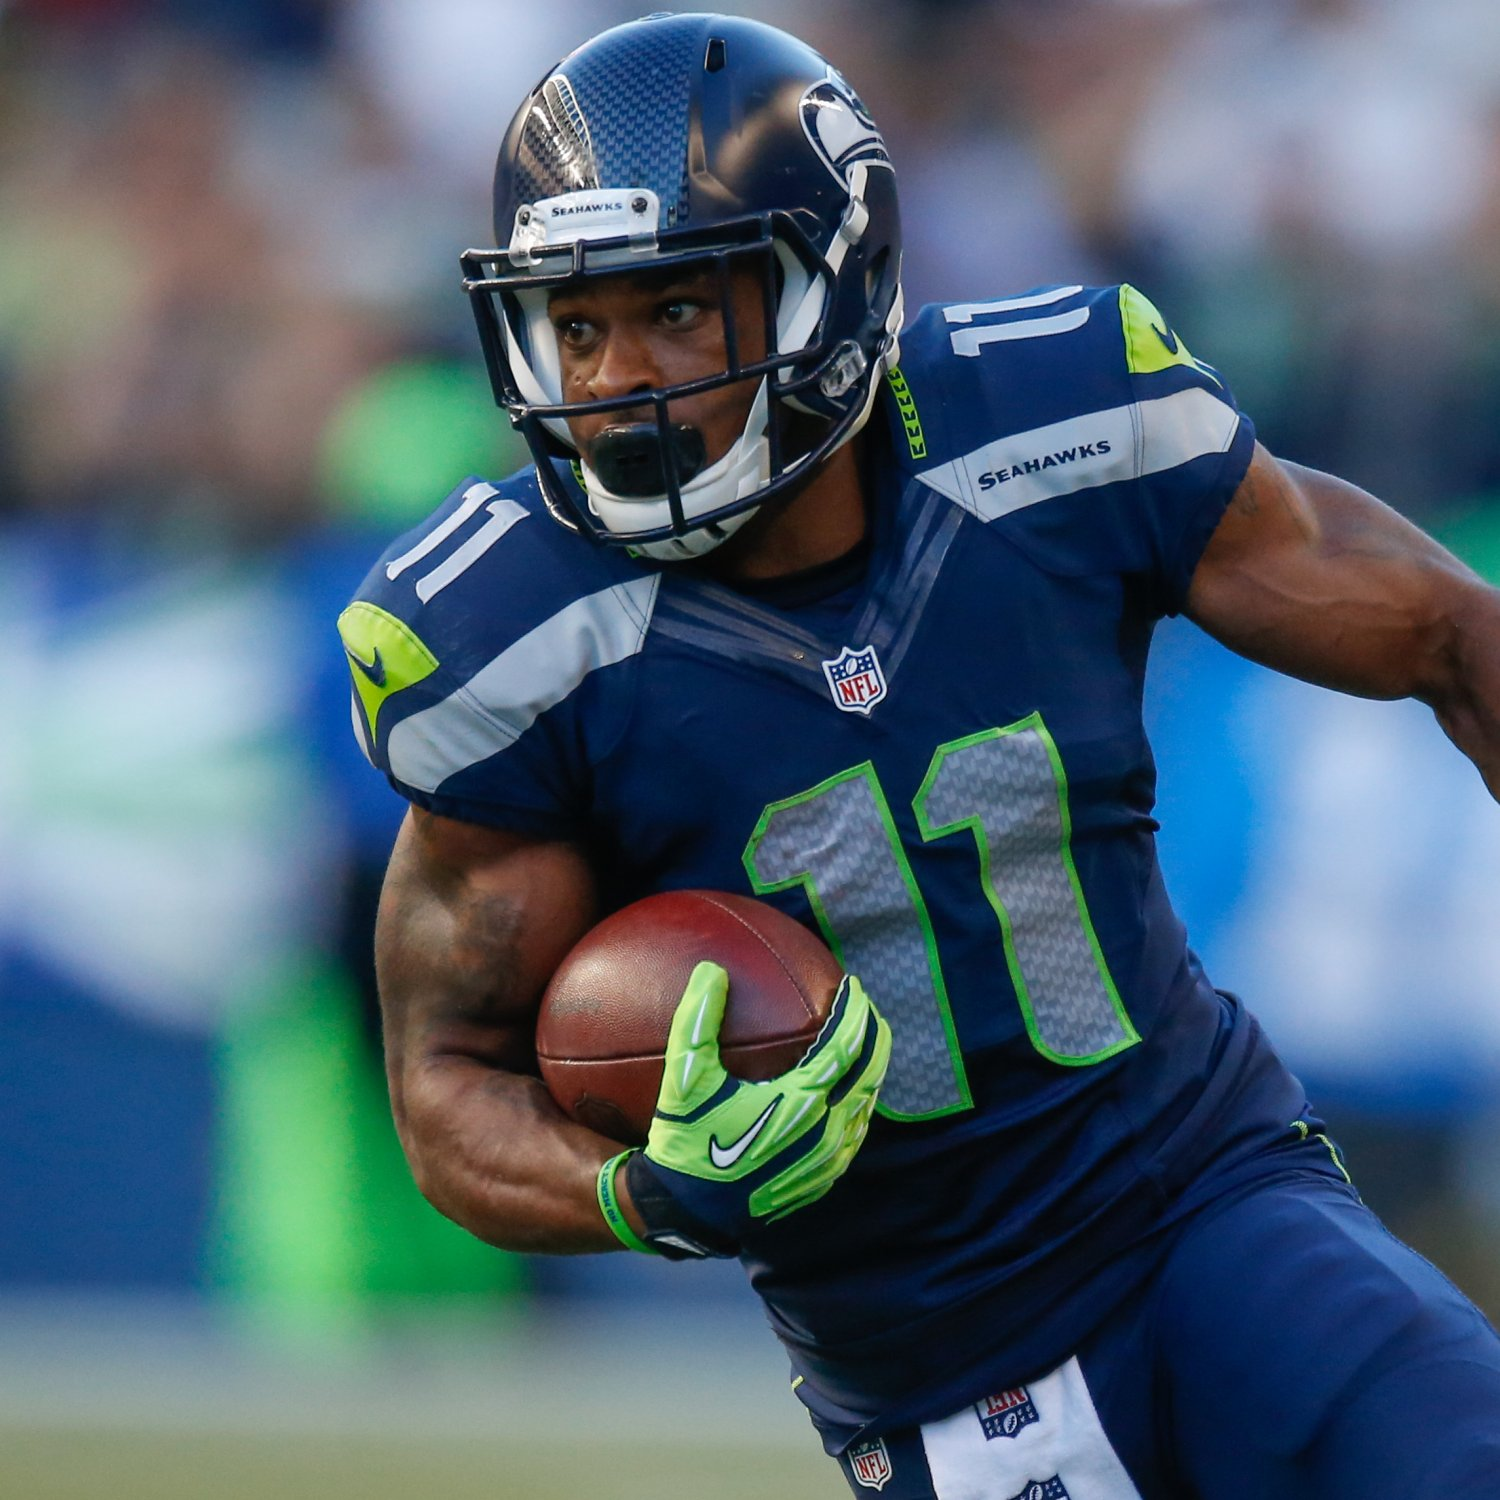 San Diego Chargers Broadcast: Seattle Seahawks Vs. San Diego Chargers: Live Score And